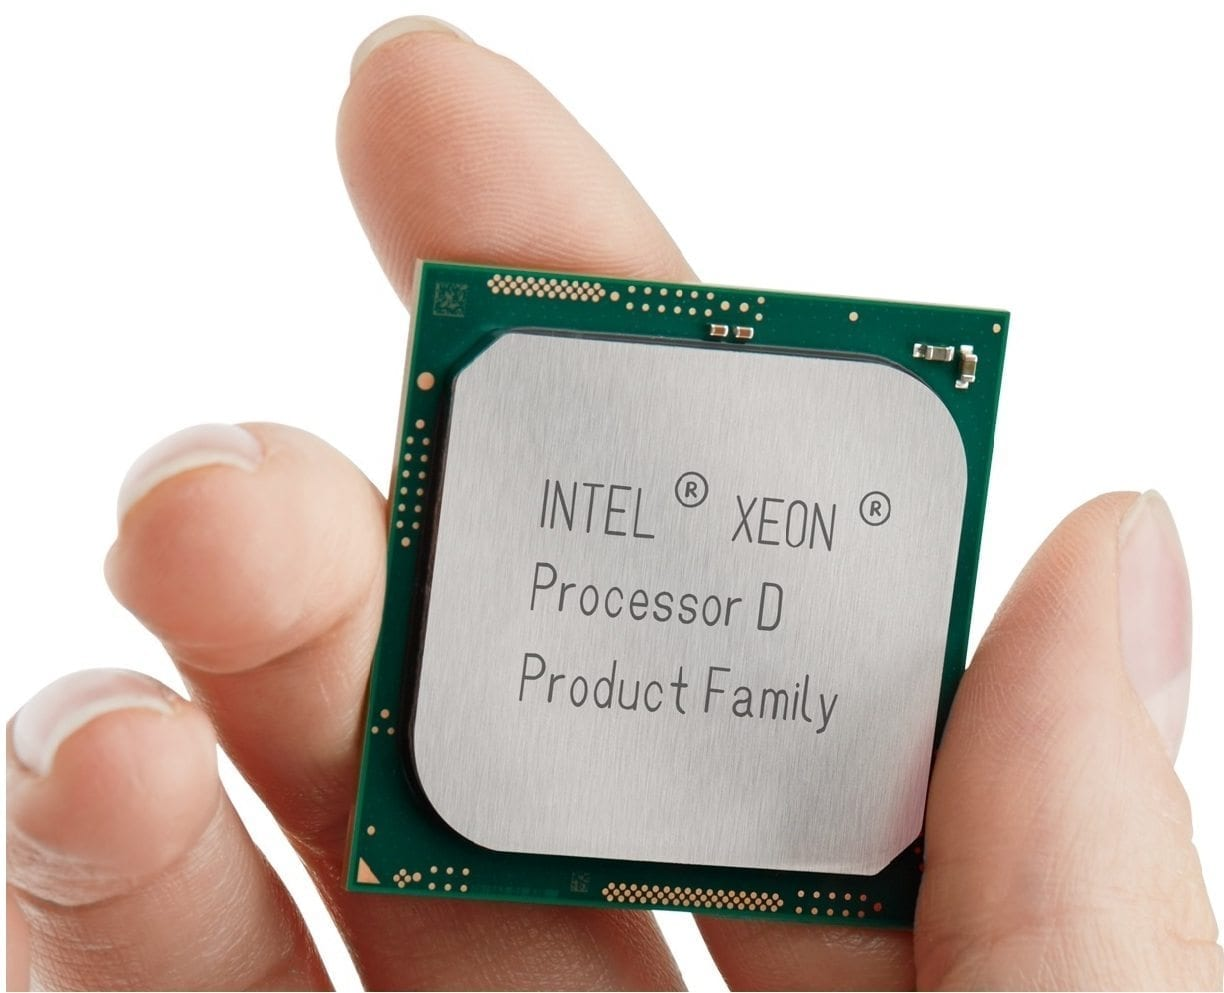 Xeon-D small size